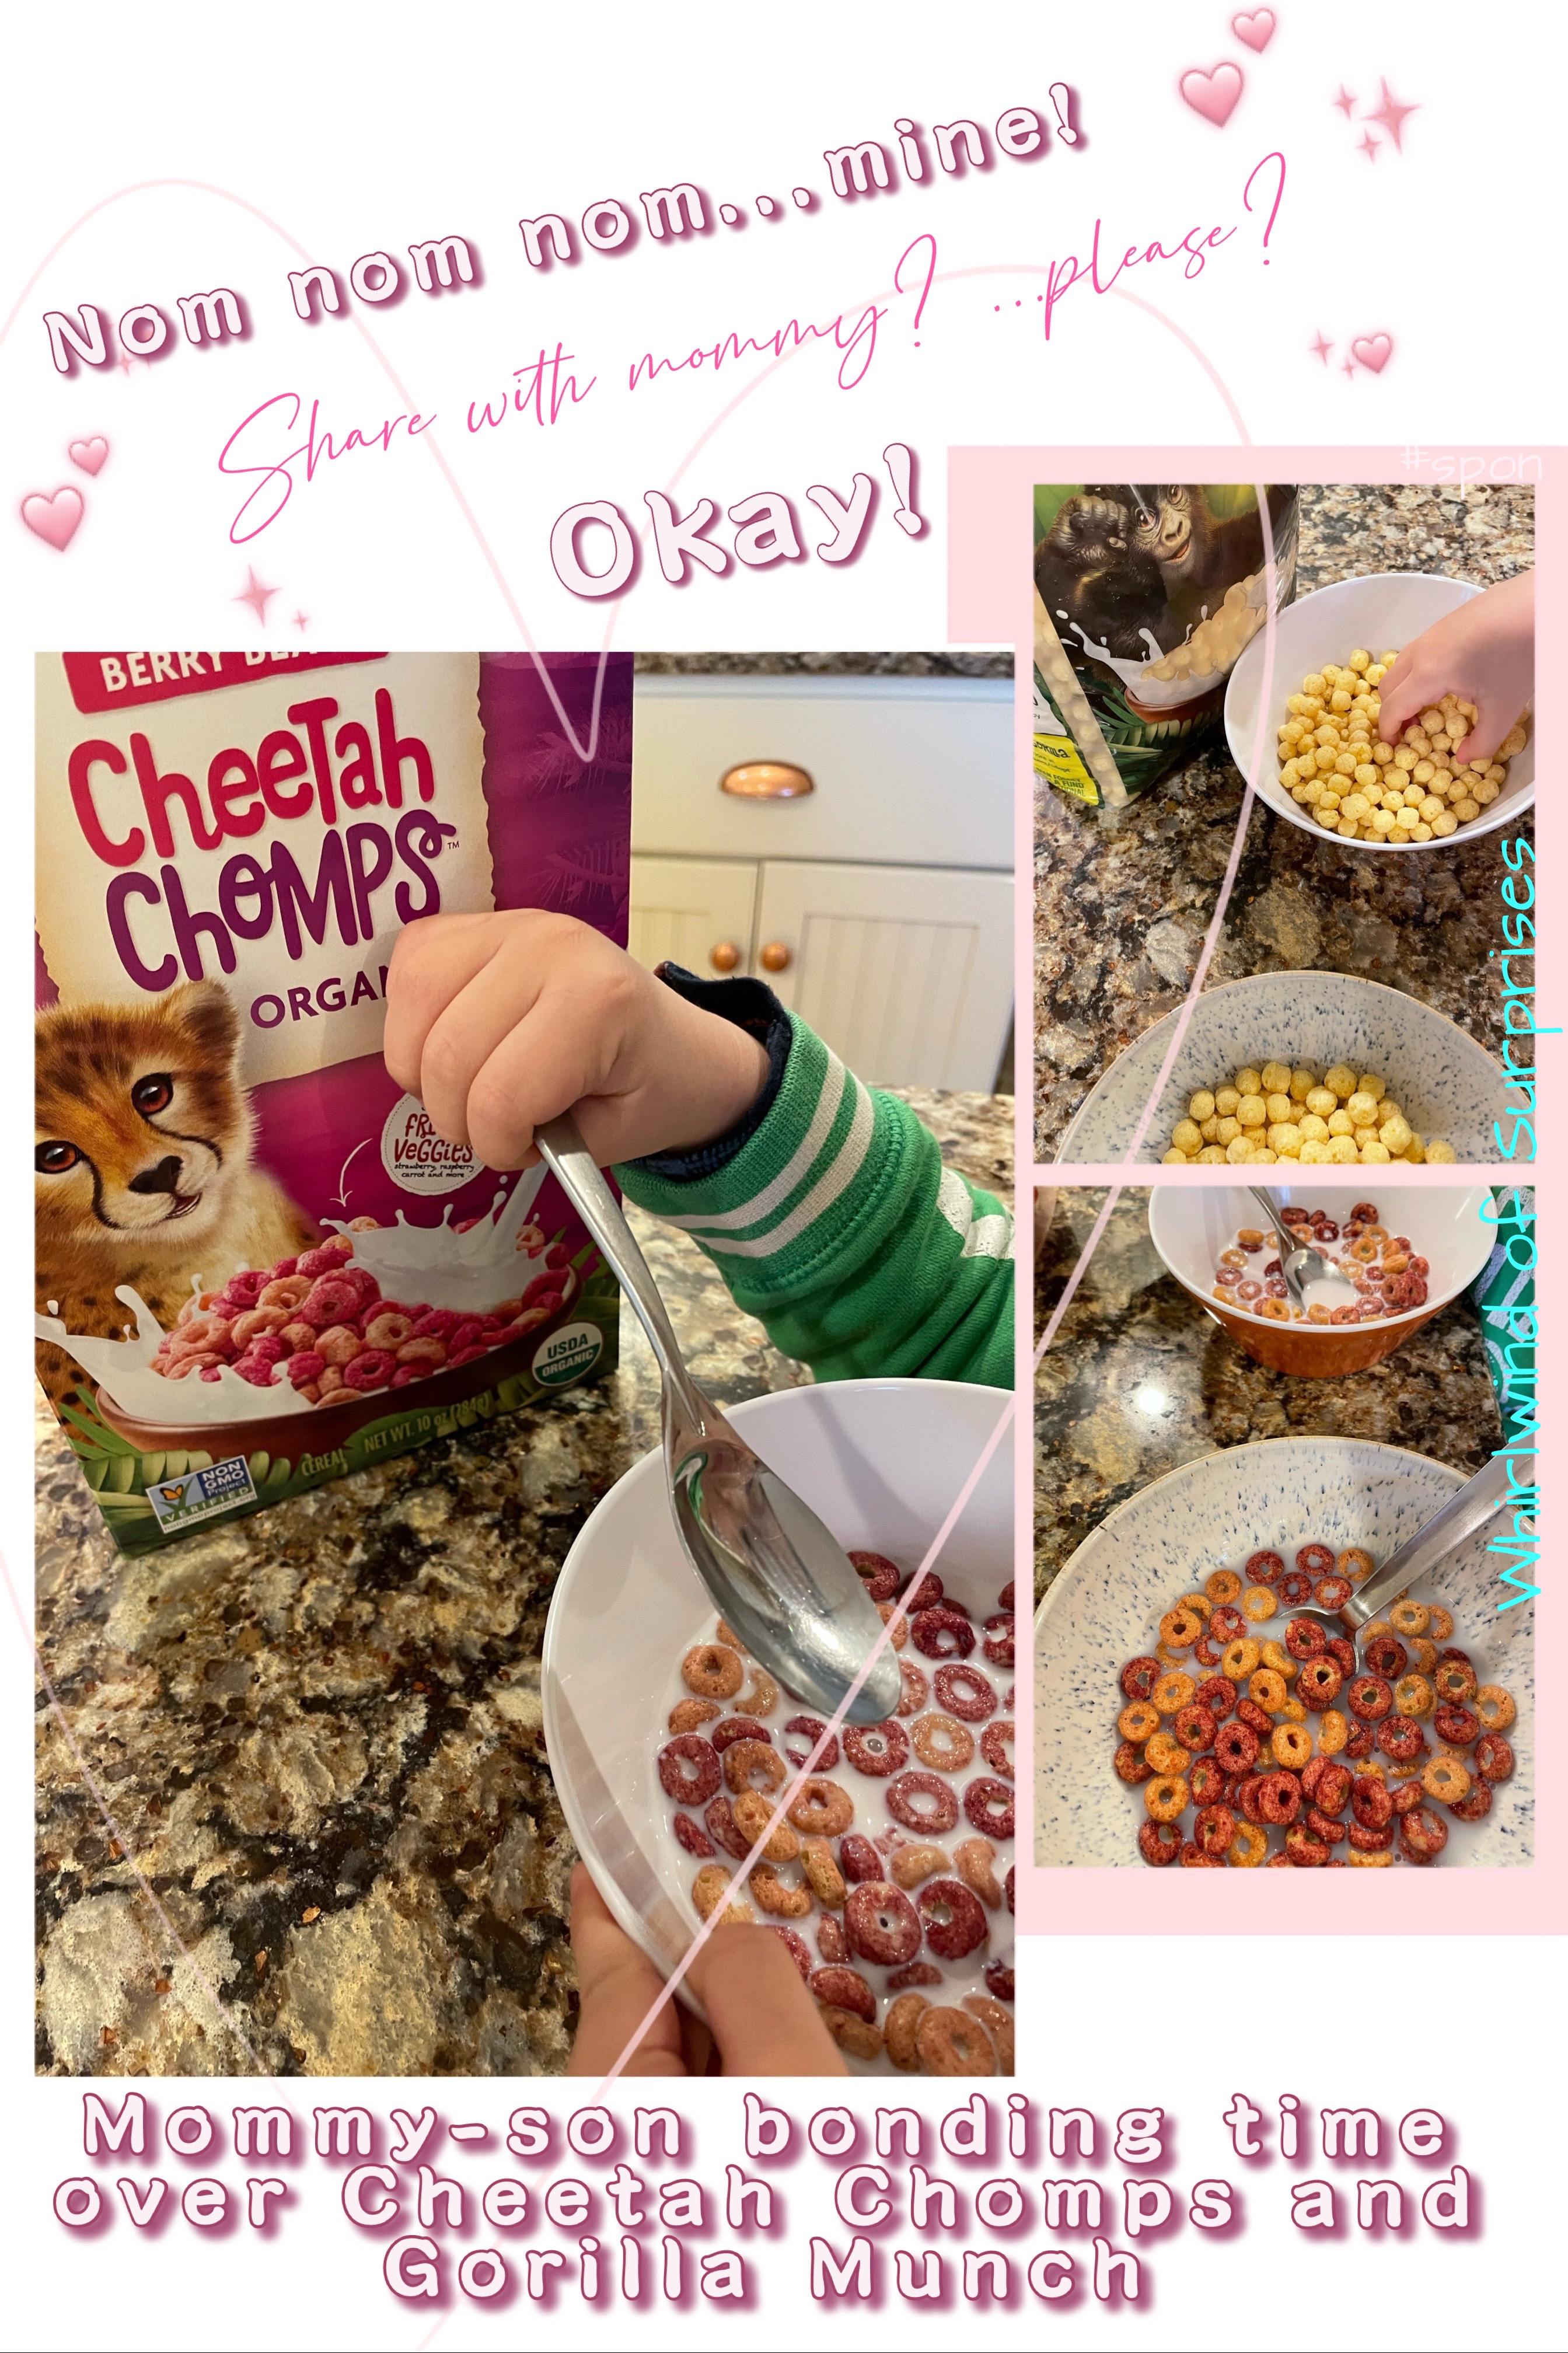 Our kid loves his EnviroKidz cereal and activities